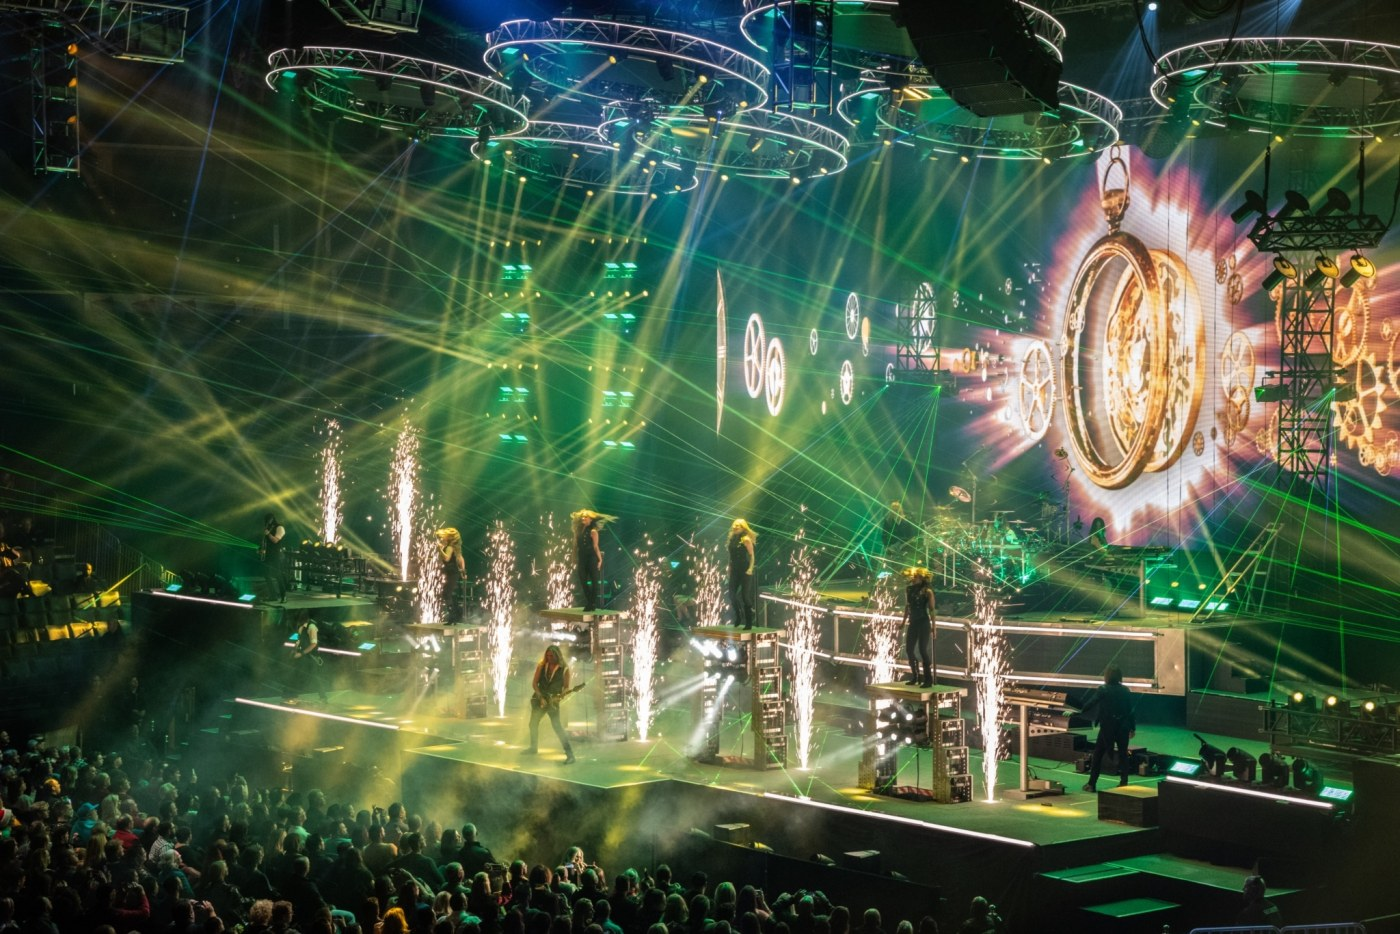 Trans-Siberian Orchestra puts on quite the show